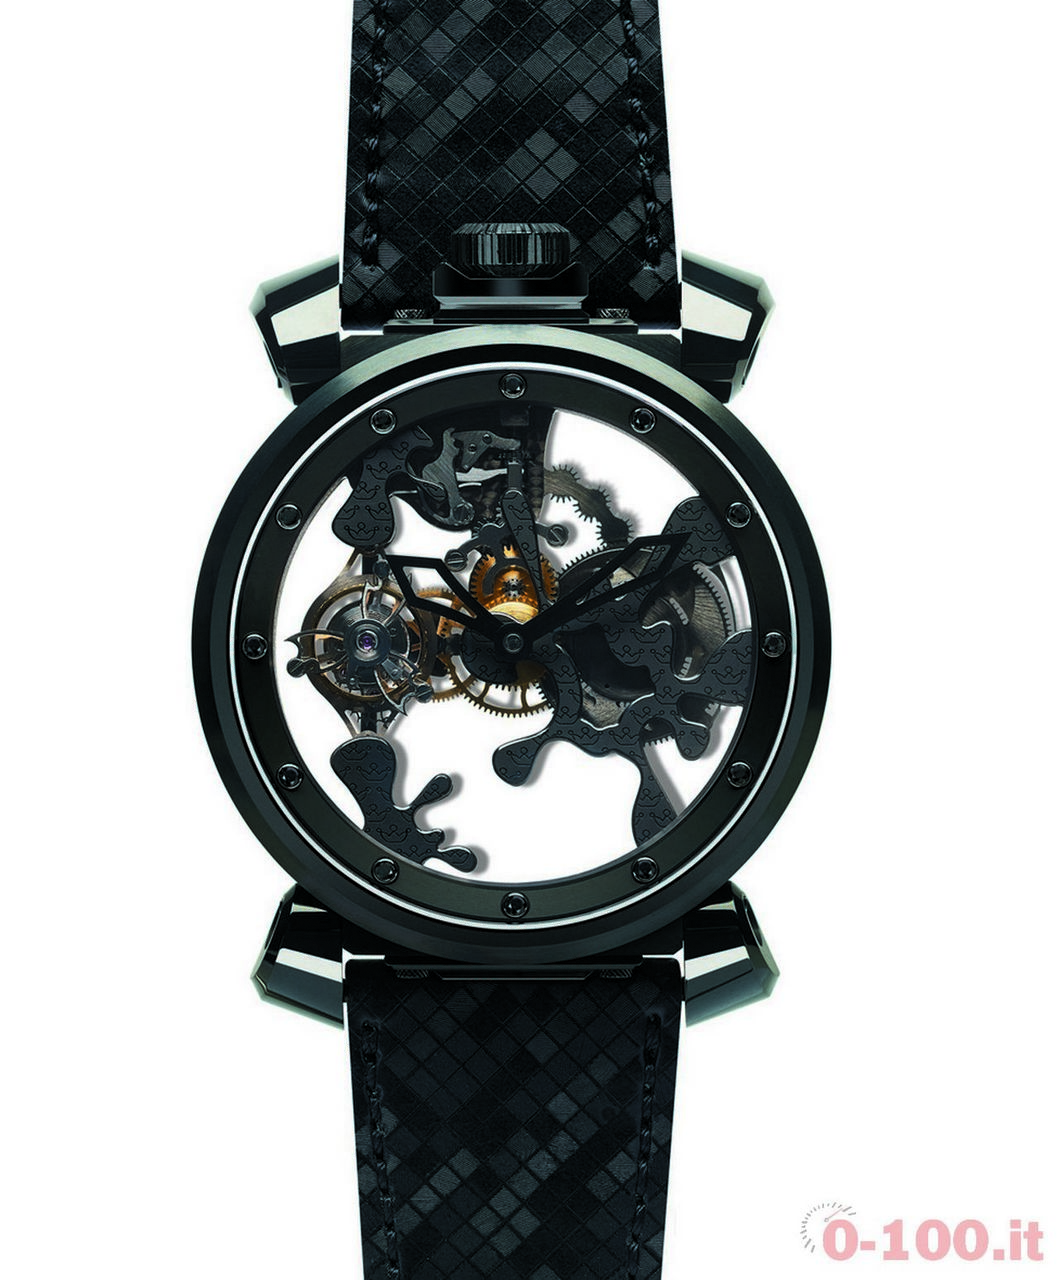 gaga-milano-quirky-tourbillon-prezzo-price_0-1001